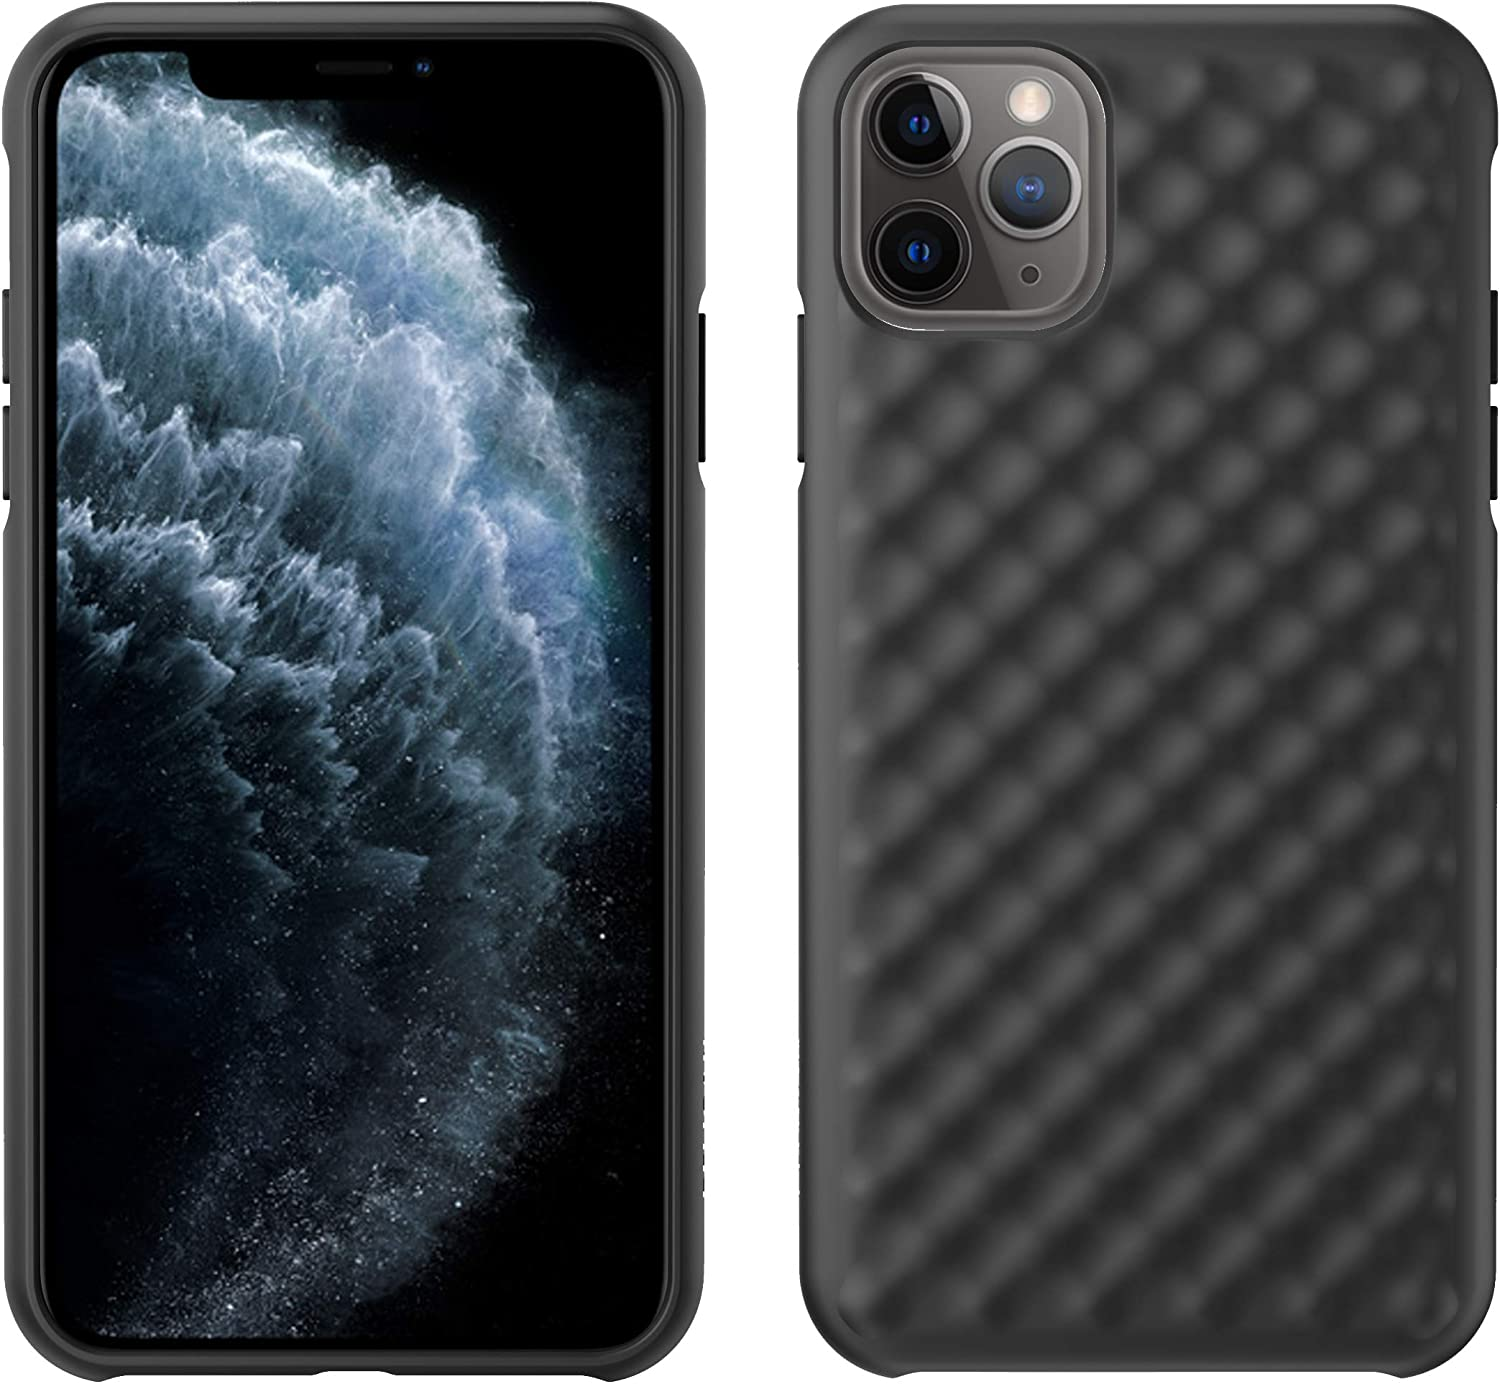 Pelican iPhone 11 Pro Max Case, Rogue Series – Military Grade Drop Tested, TPU Protective Case for Apple iPhone 11 Pro Max (Black)